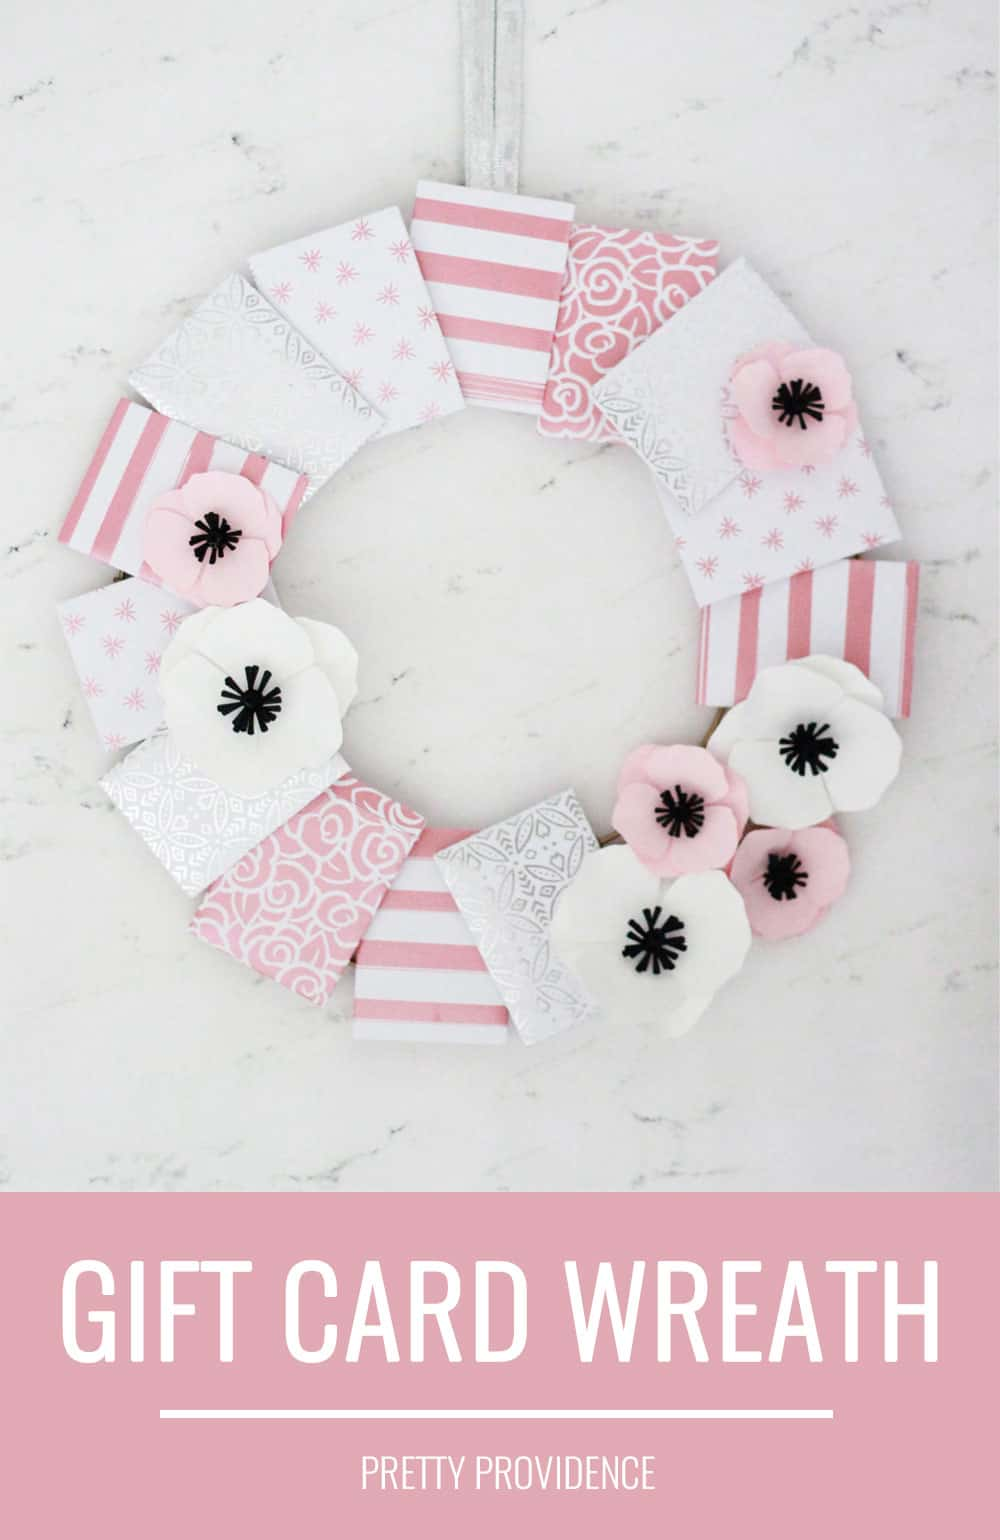 This easy gift card envelope wreath is so fun and creative! I love an easy gift card gift idea!